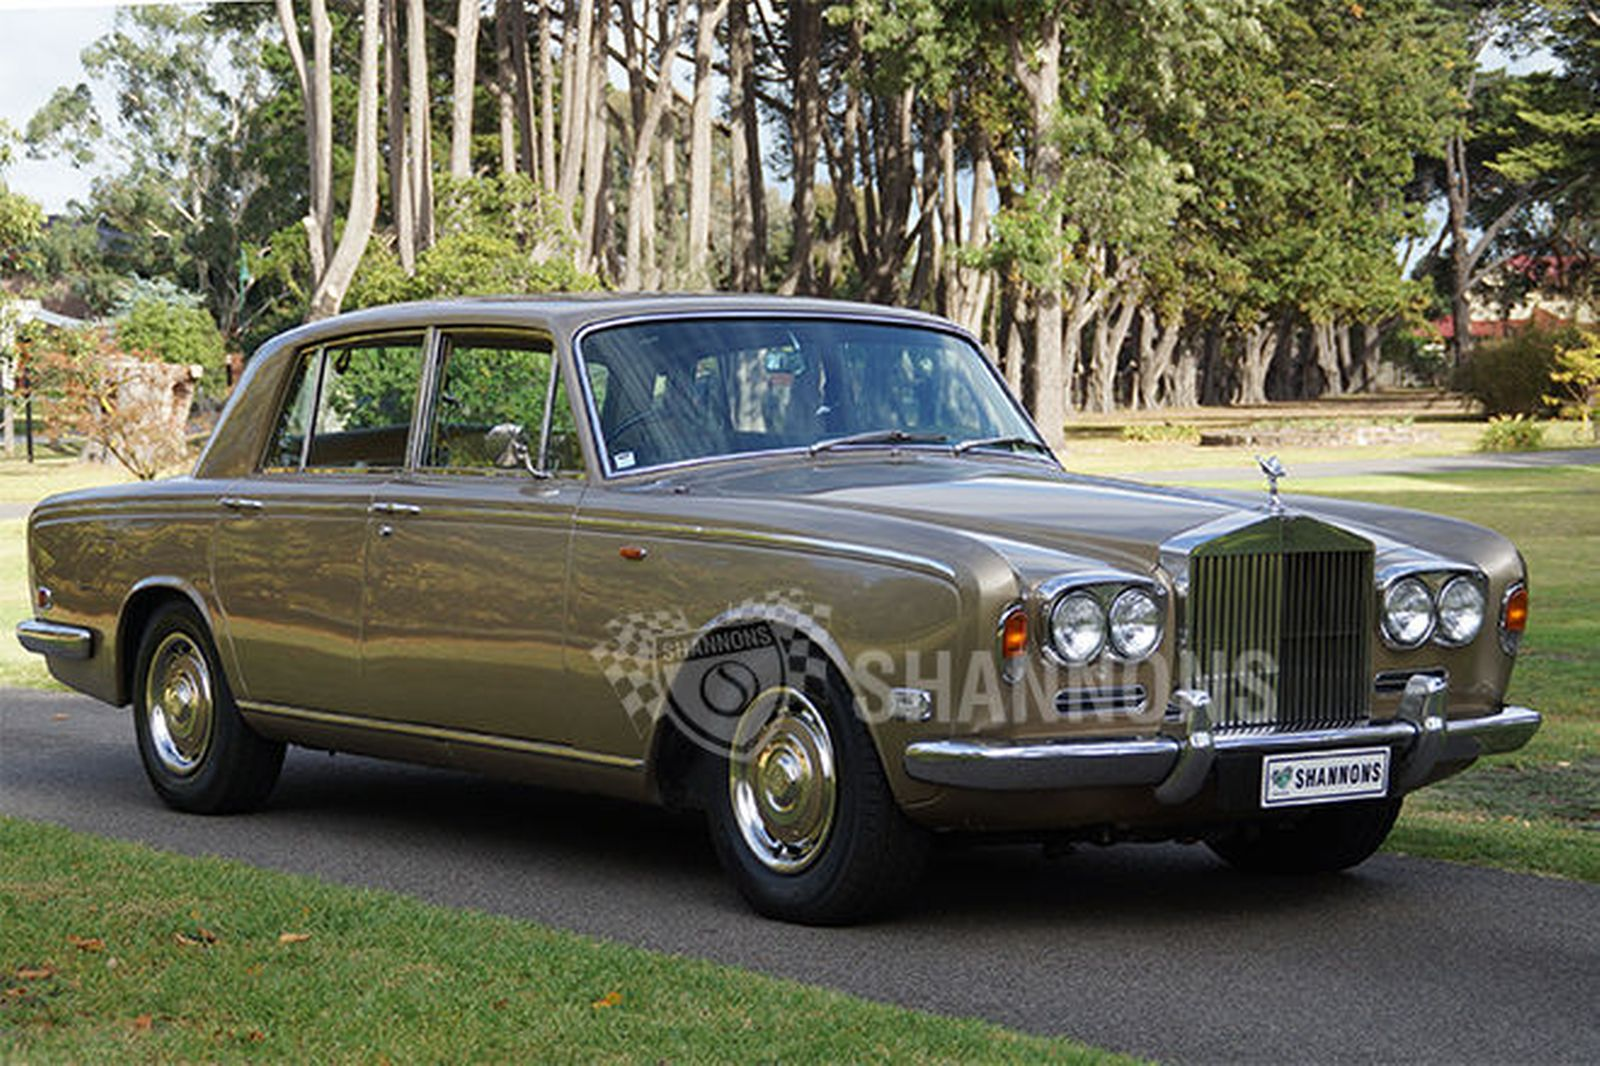 1973 Rolls royce Silver Shadow Photos, Informations, Articles ...